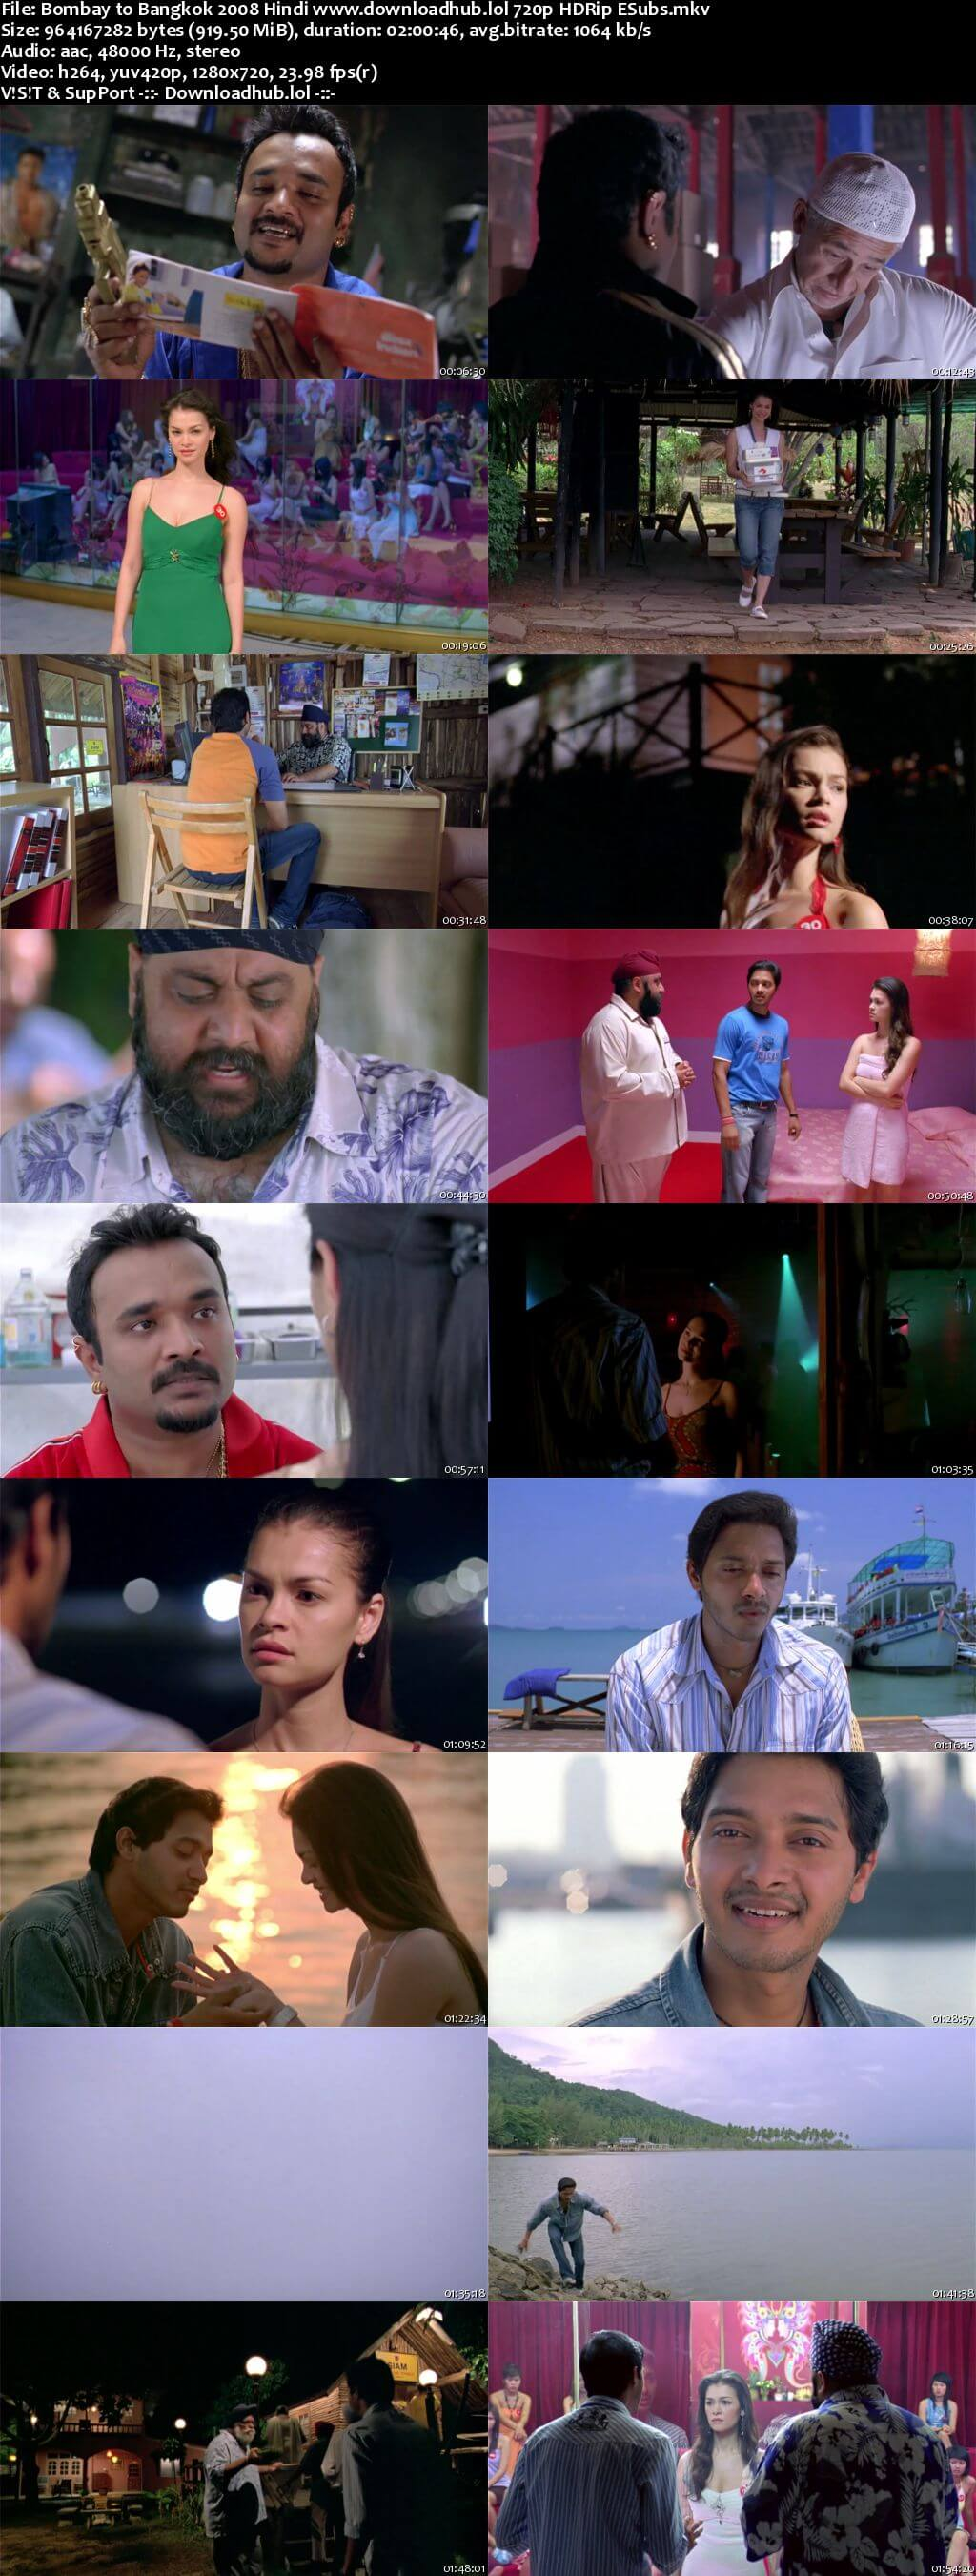 Bombay to Bangkok 2008 Hindi 720p HDRip ESubs